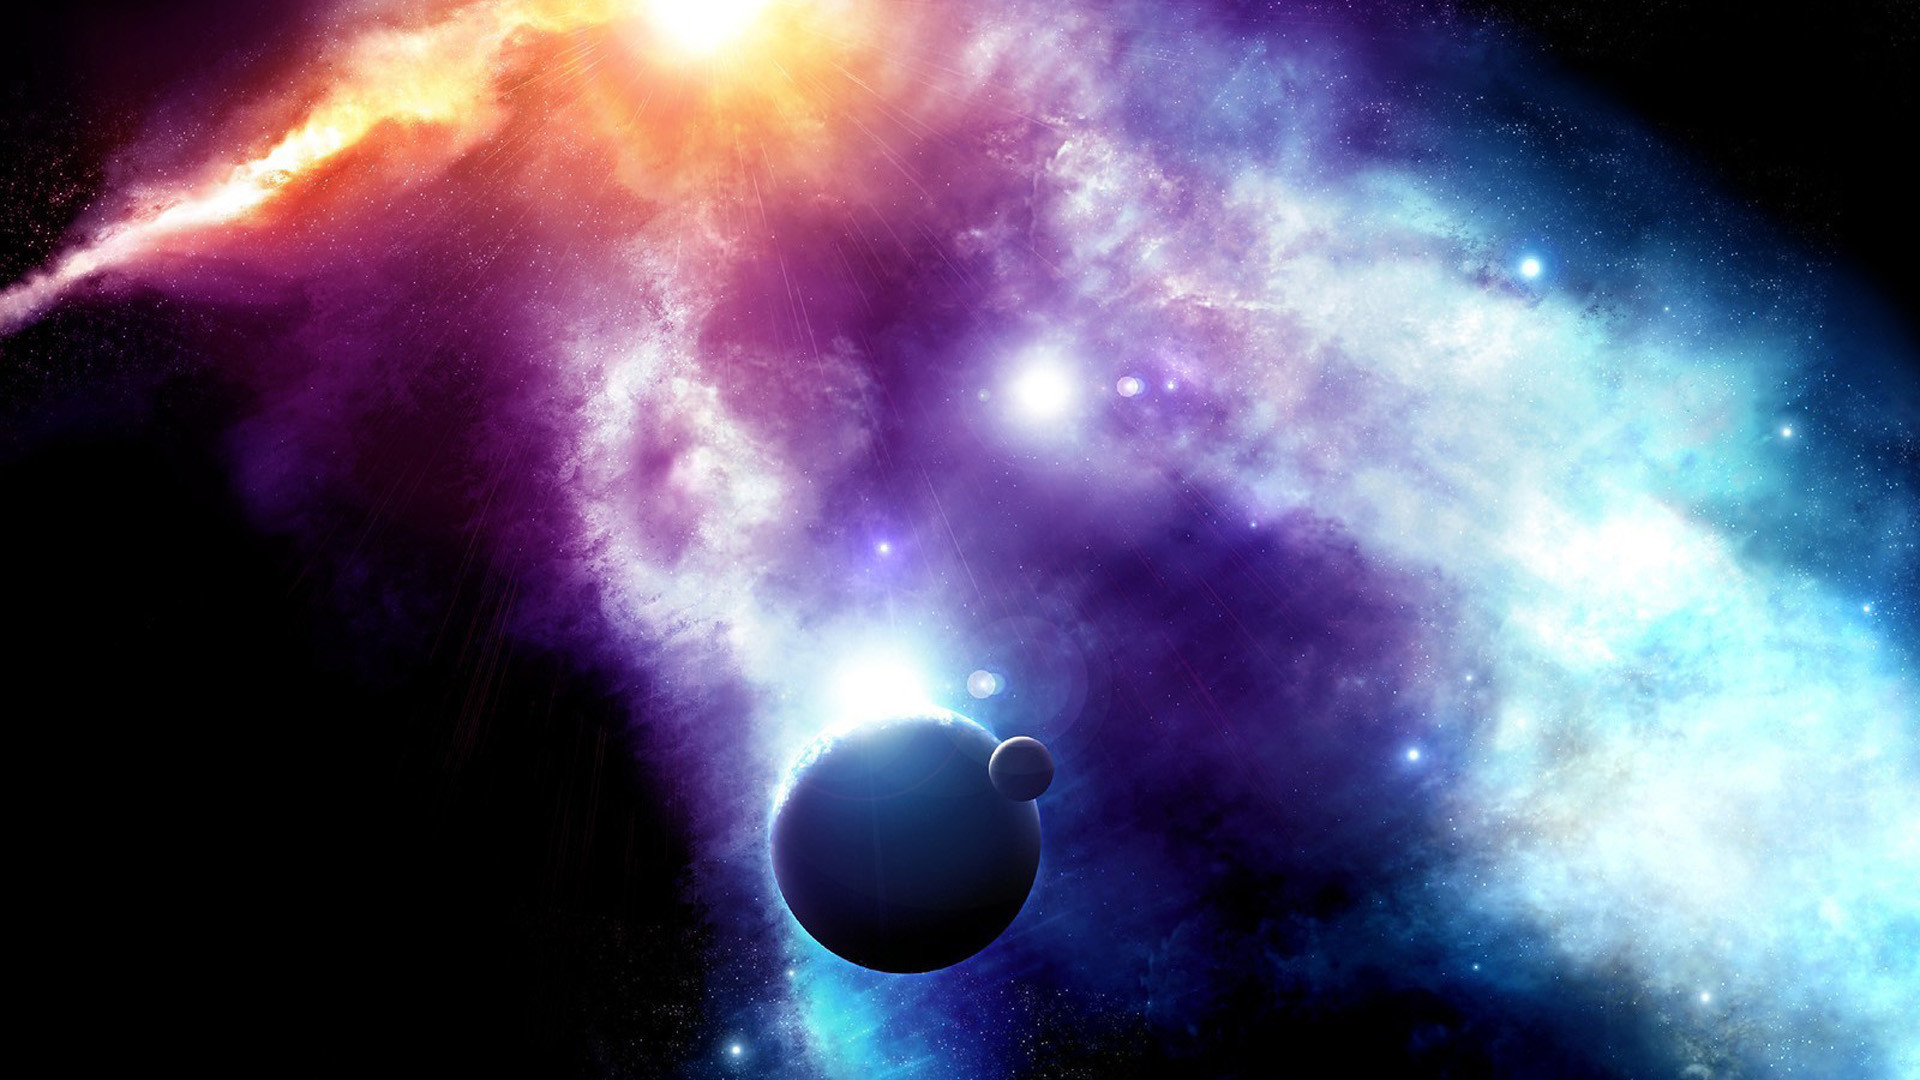 HD Space Wallpapers 4304 px ~ HDWallSource.com